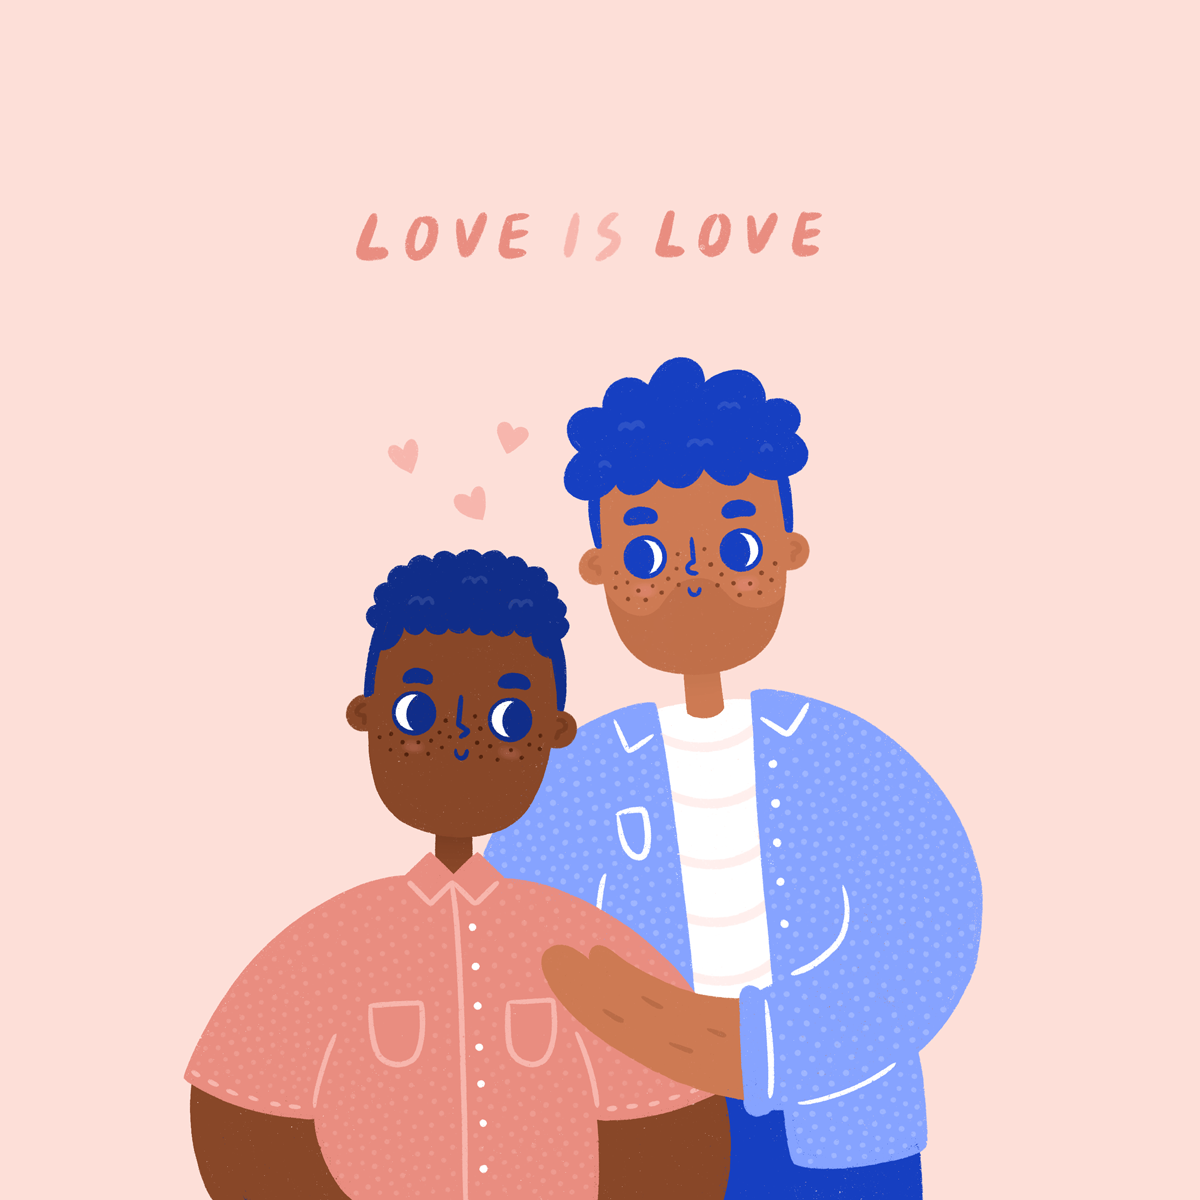 cad_illustration_loveislove_2.png